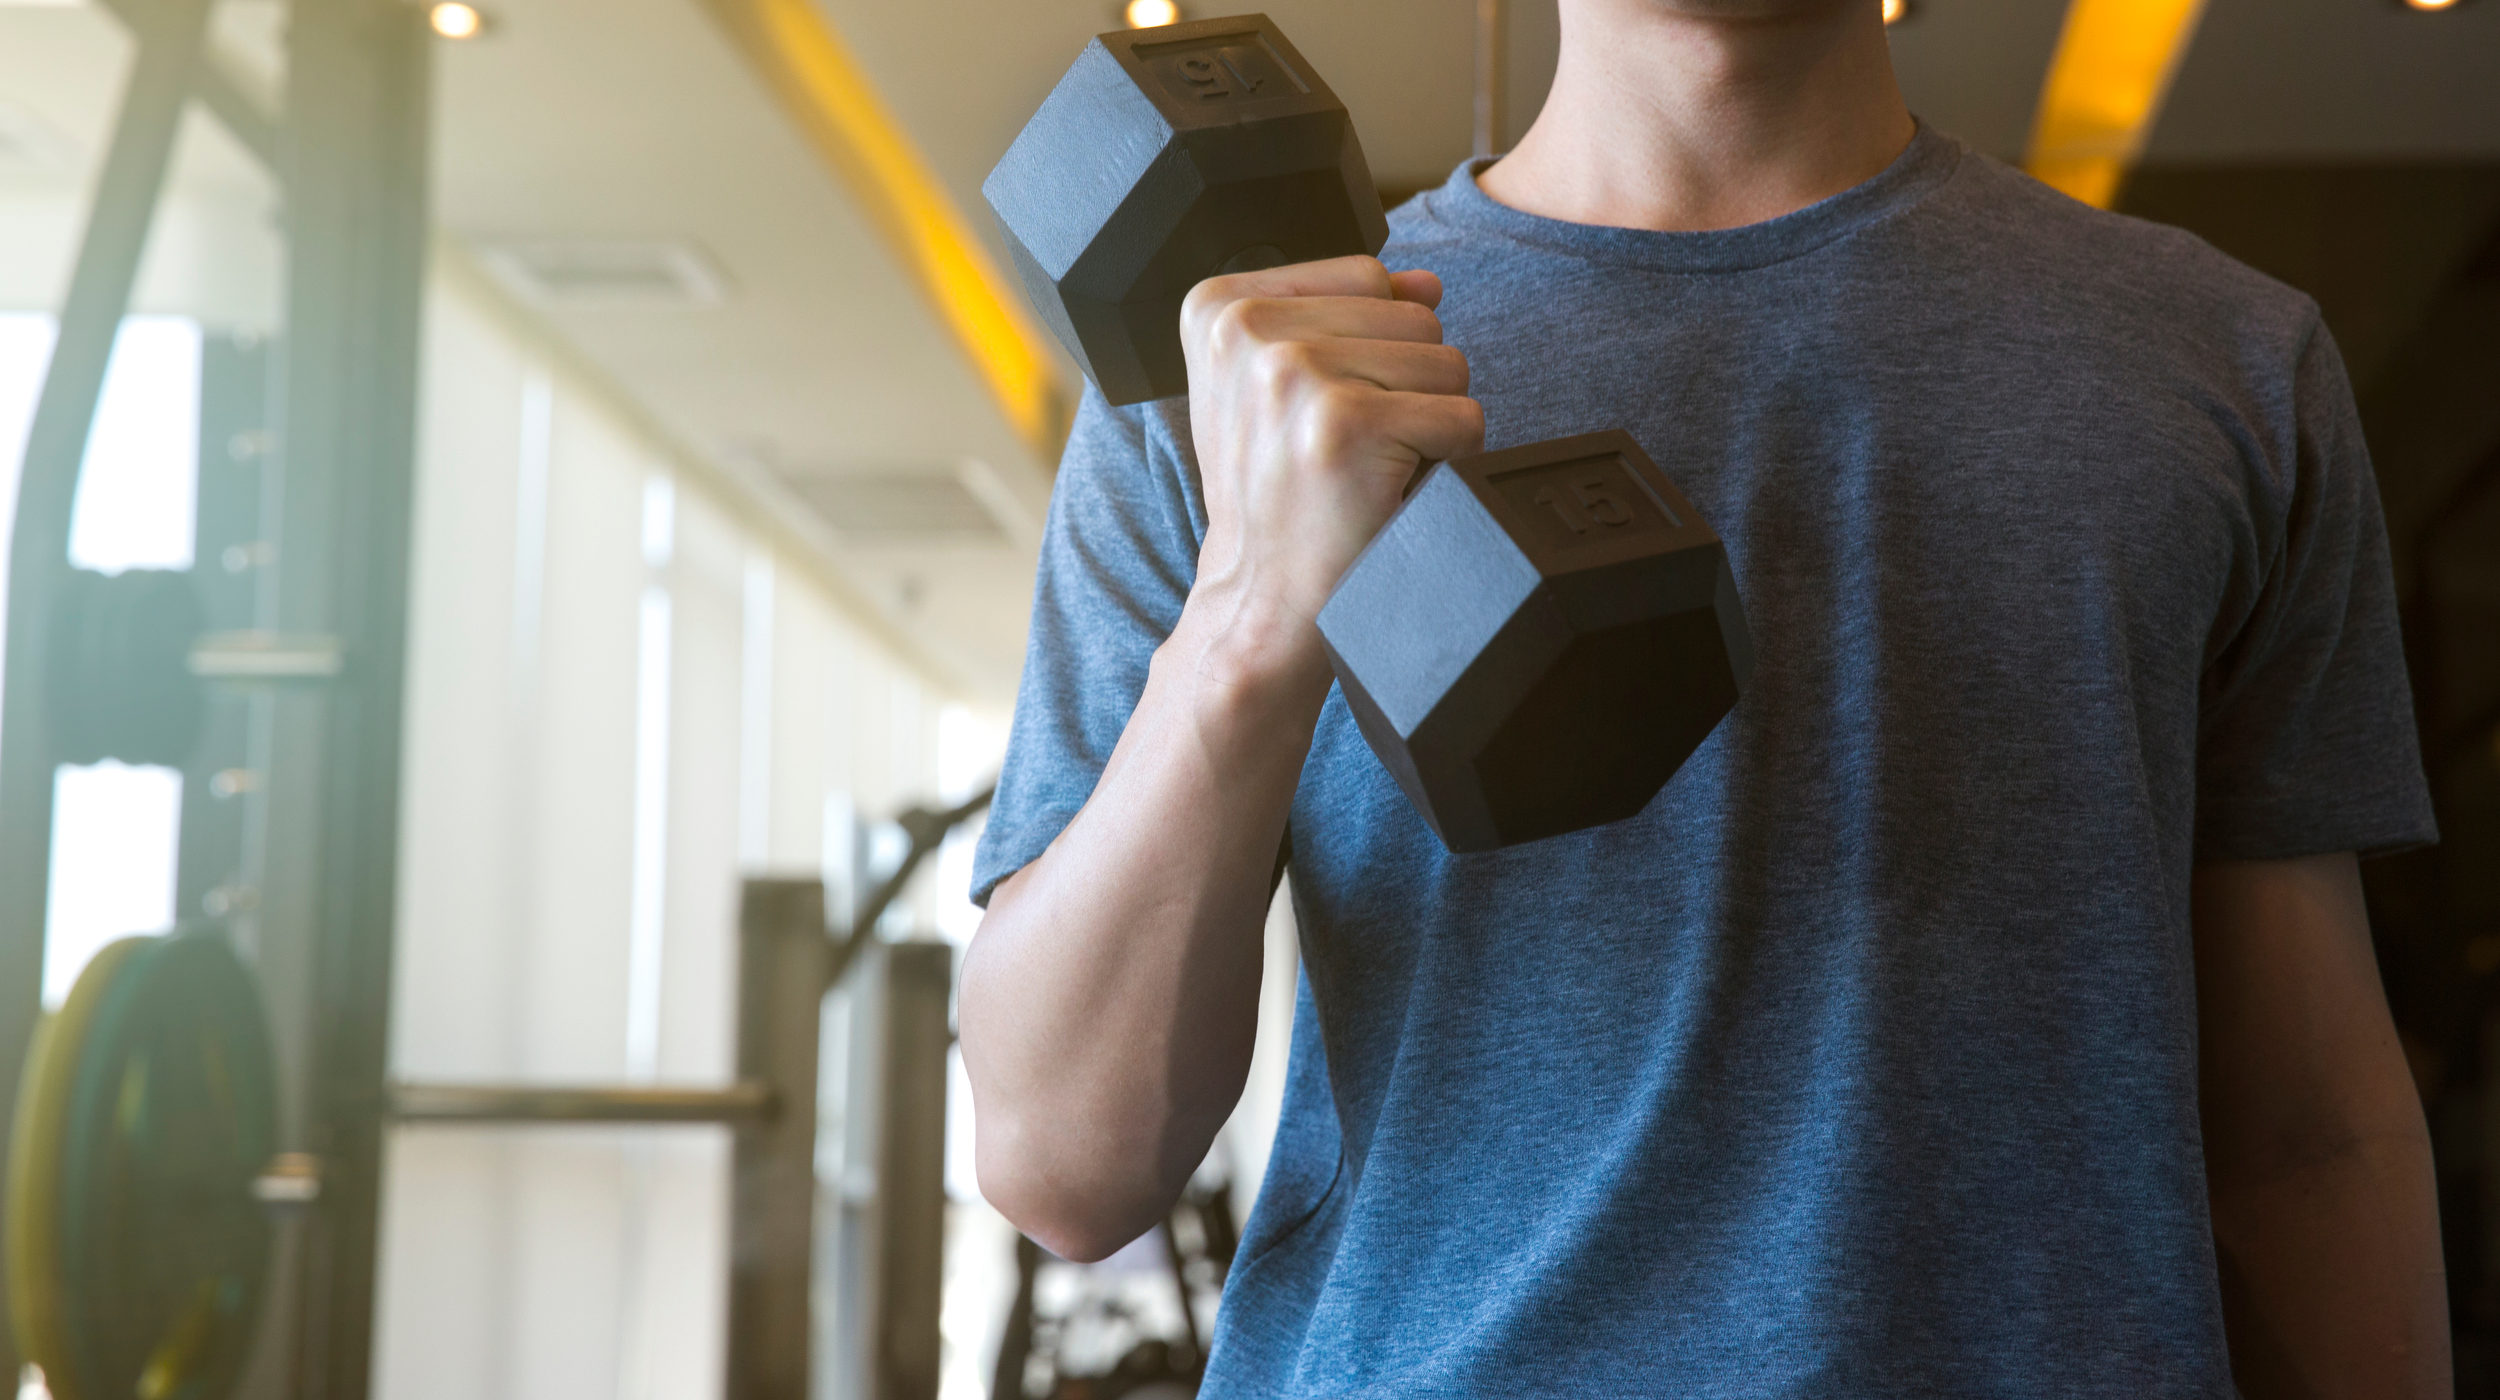 Lifting Weights – What You Should Know if You are a Beginner